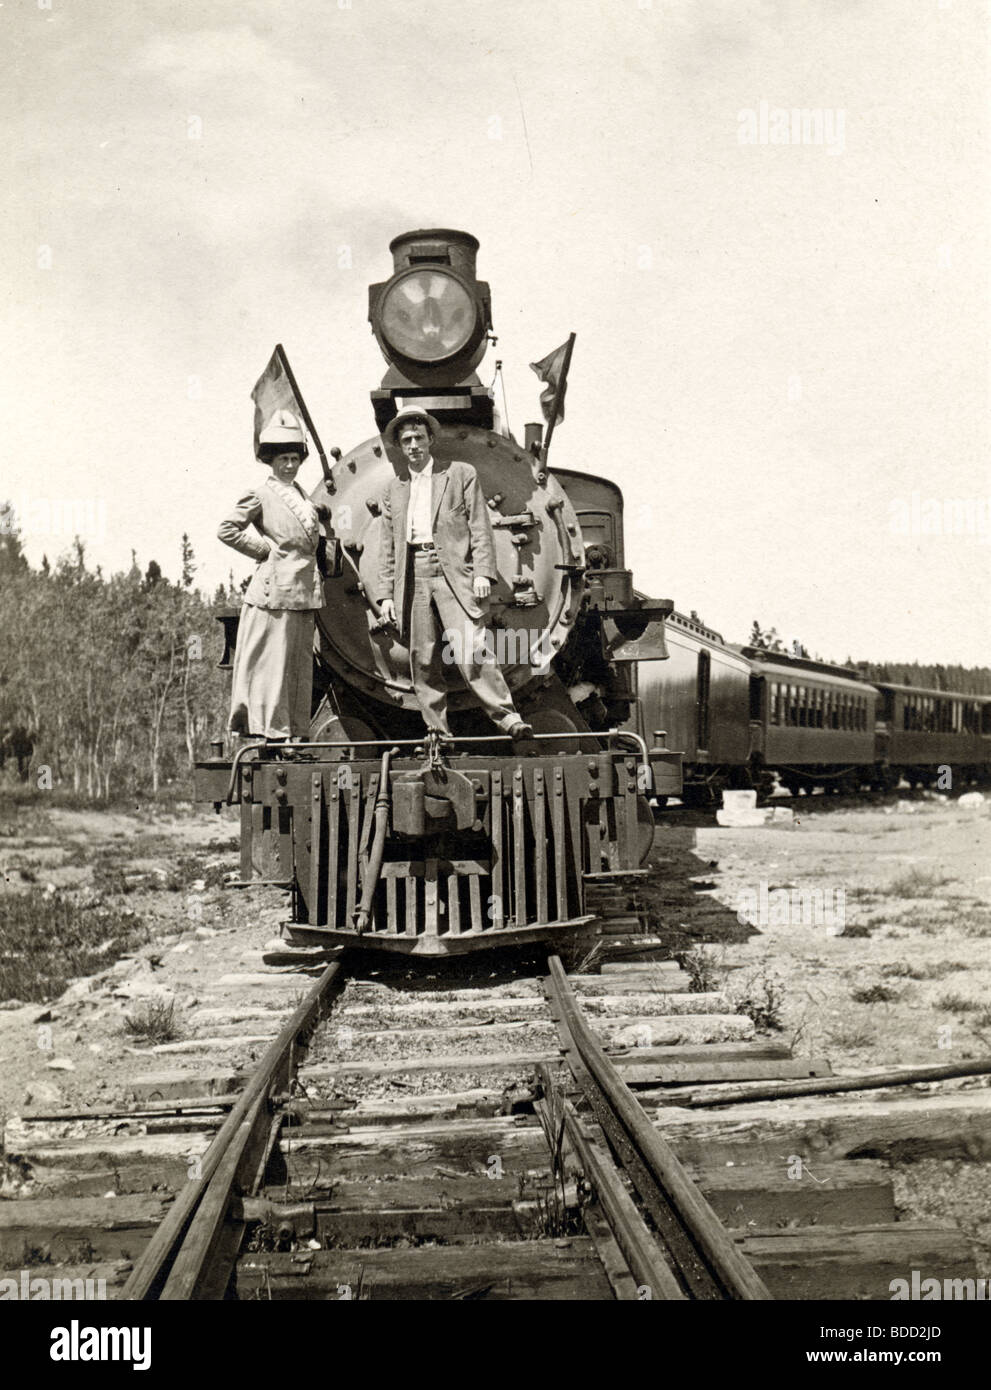 Couple Standing on Front of Locomotive Stock Photo